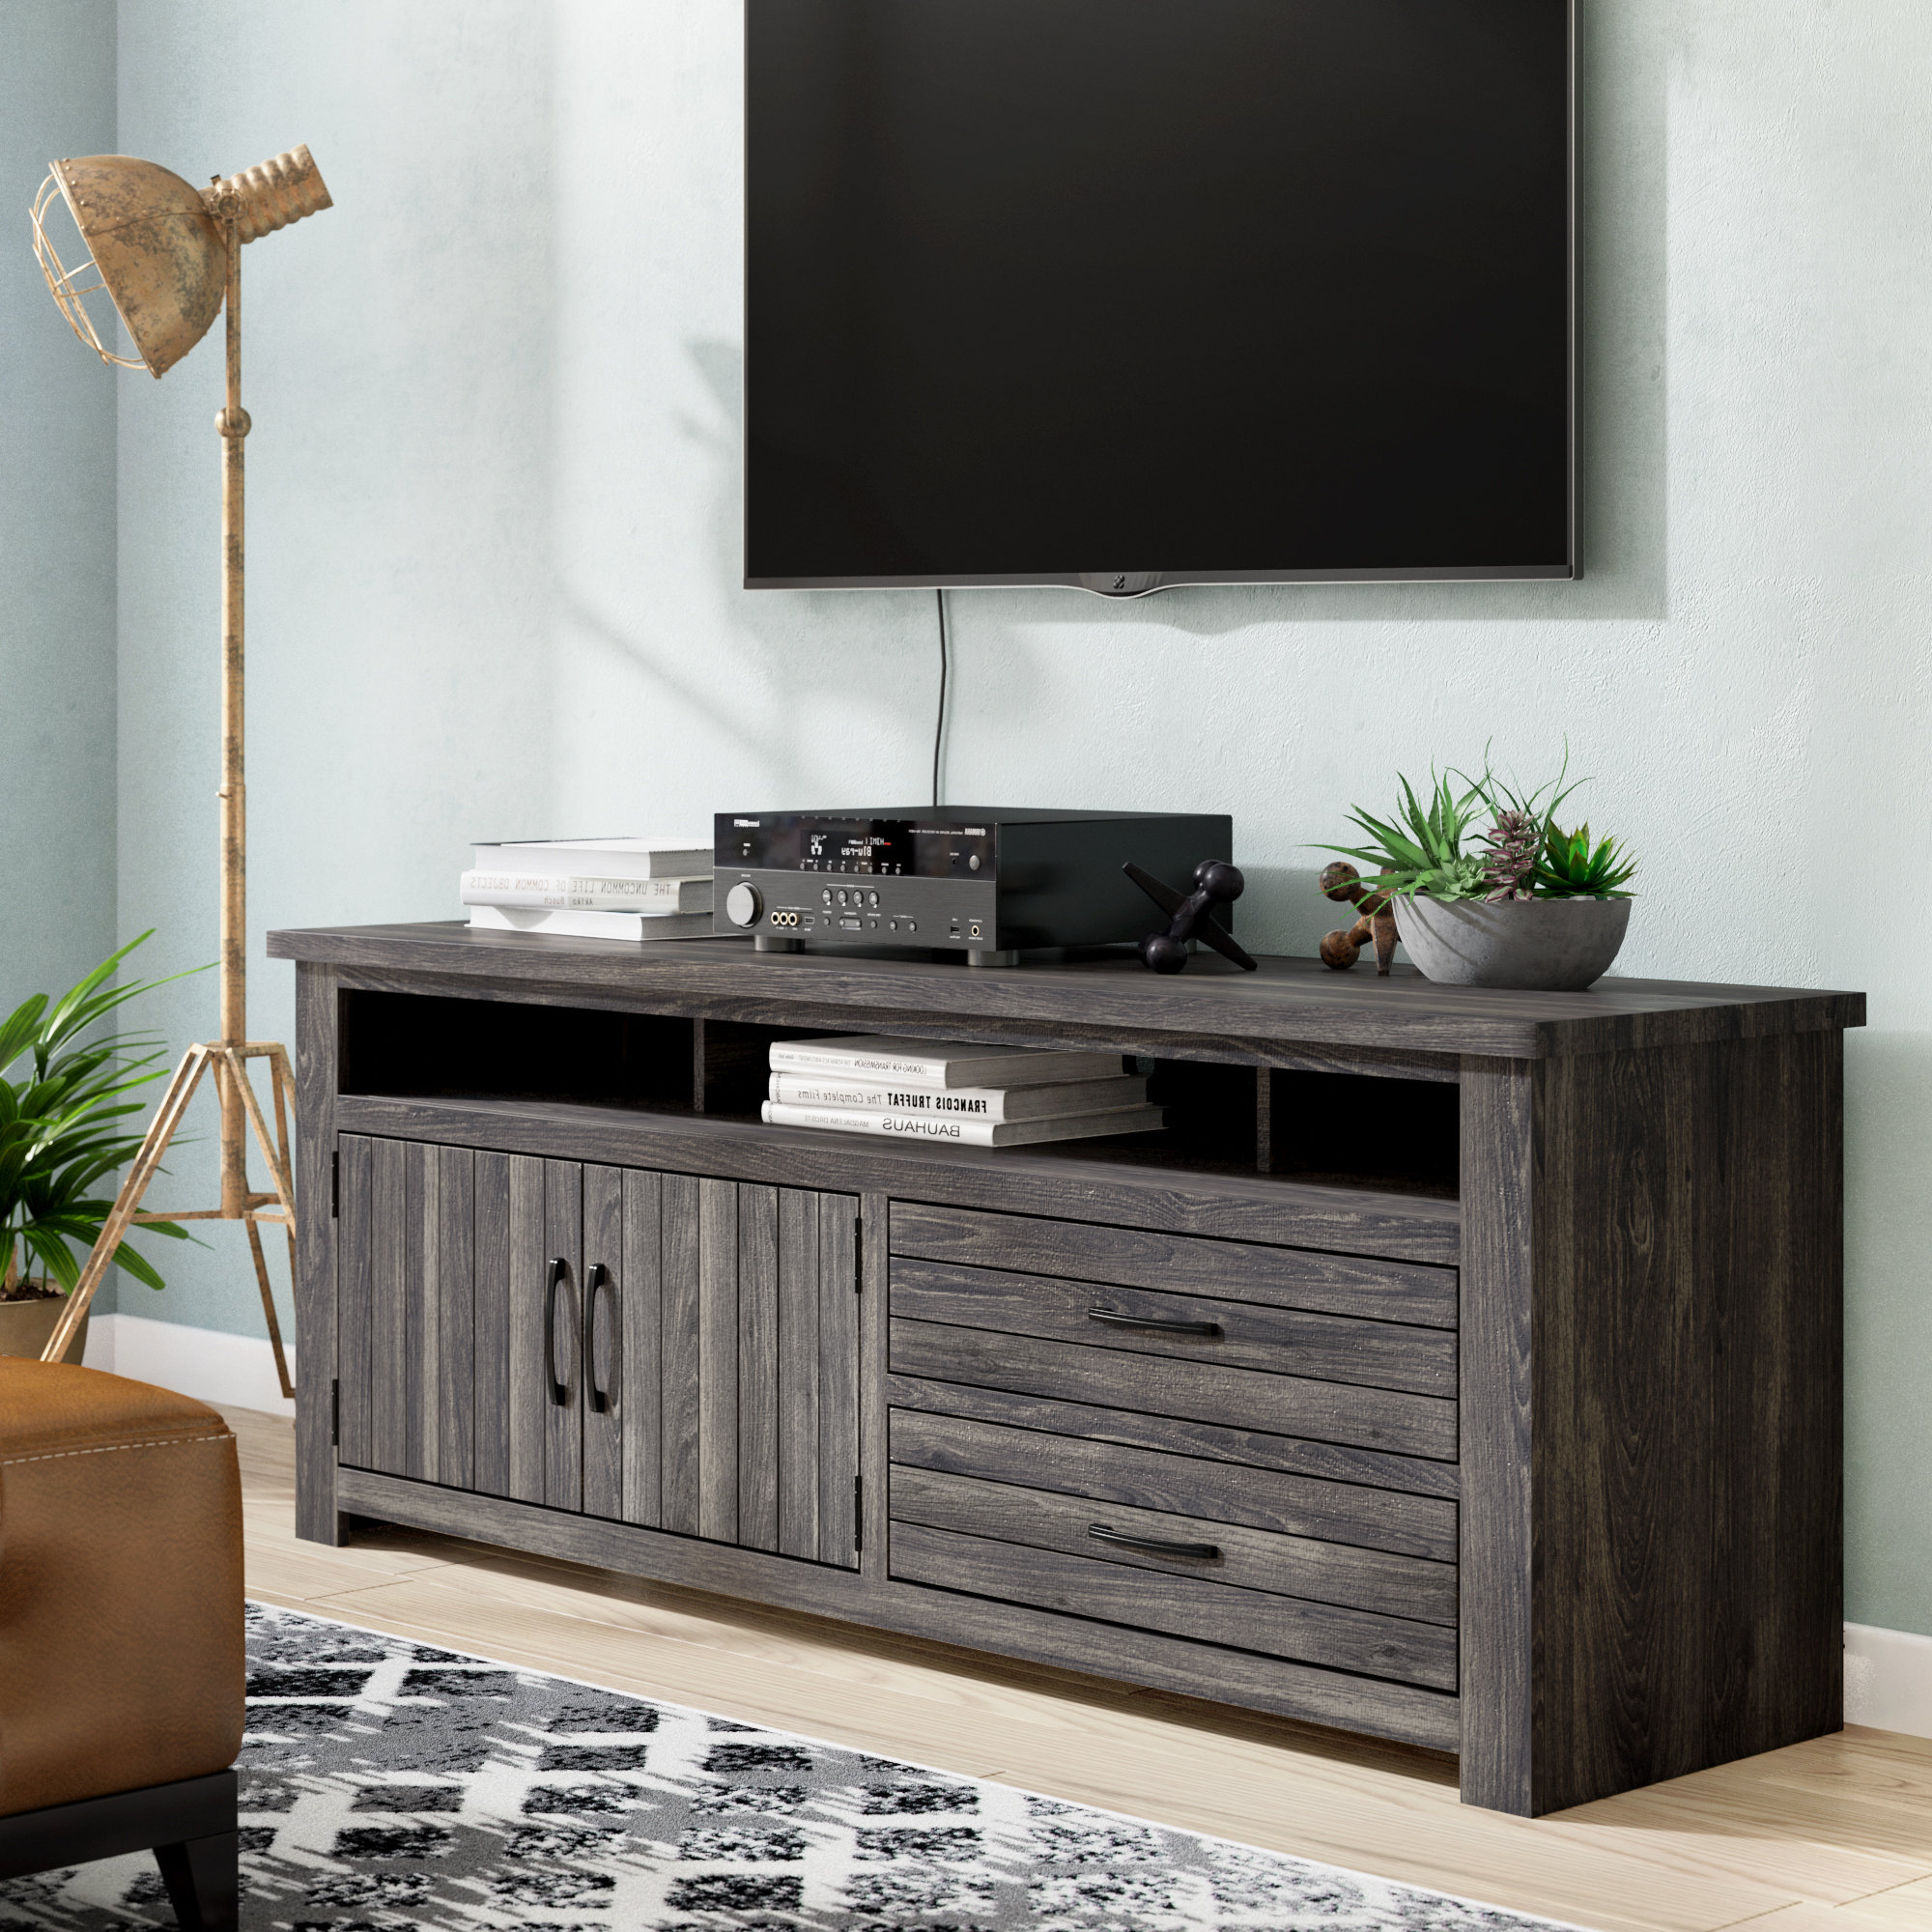 Annabelle Cream 70 Inch Tv Stands Regarding 2018 70 Inch Tv Stands (View 6 of 20)